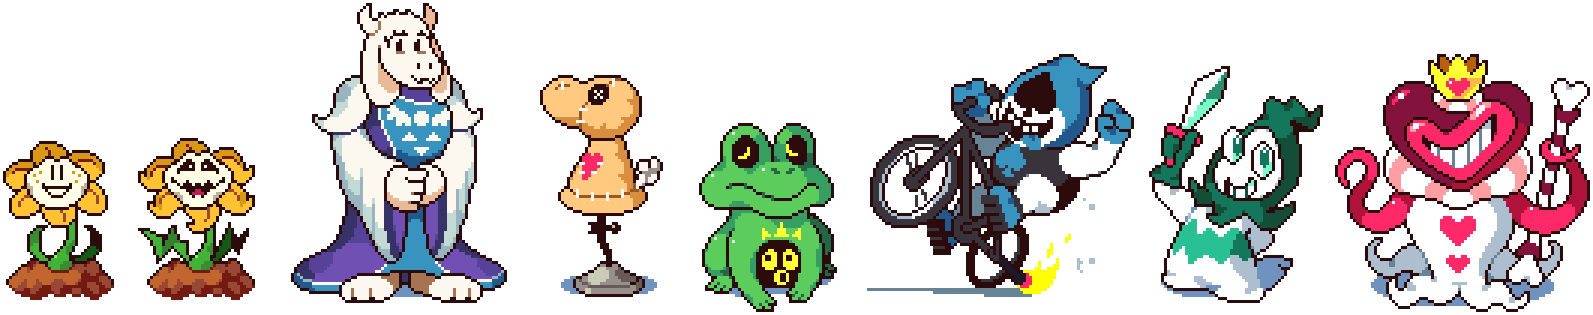 UNDERTALE - MOTHER 4 Style